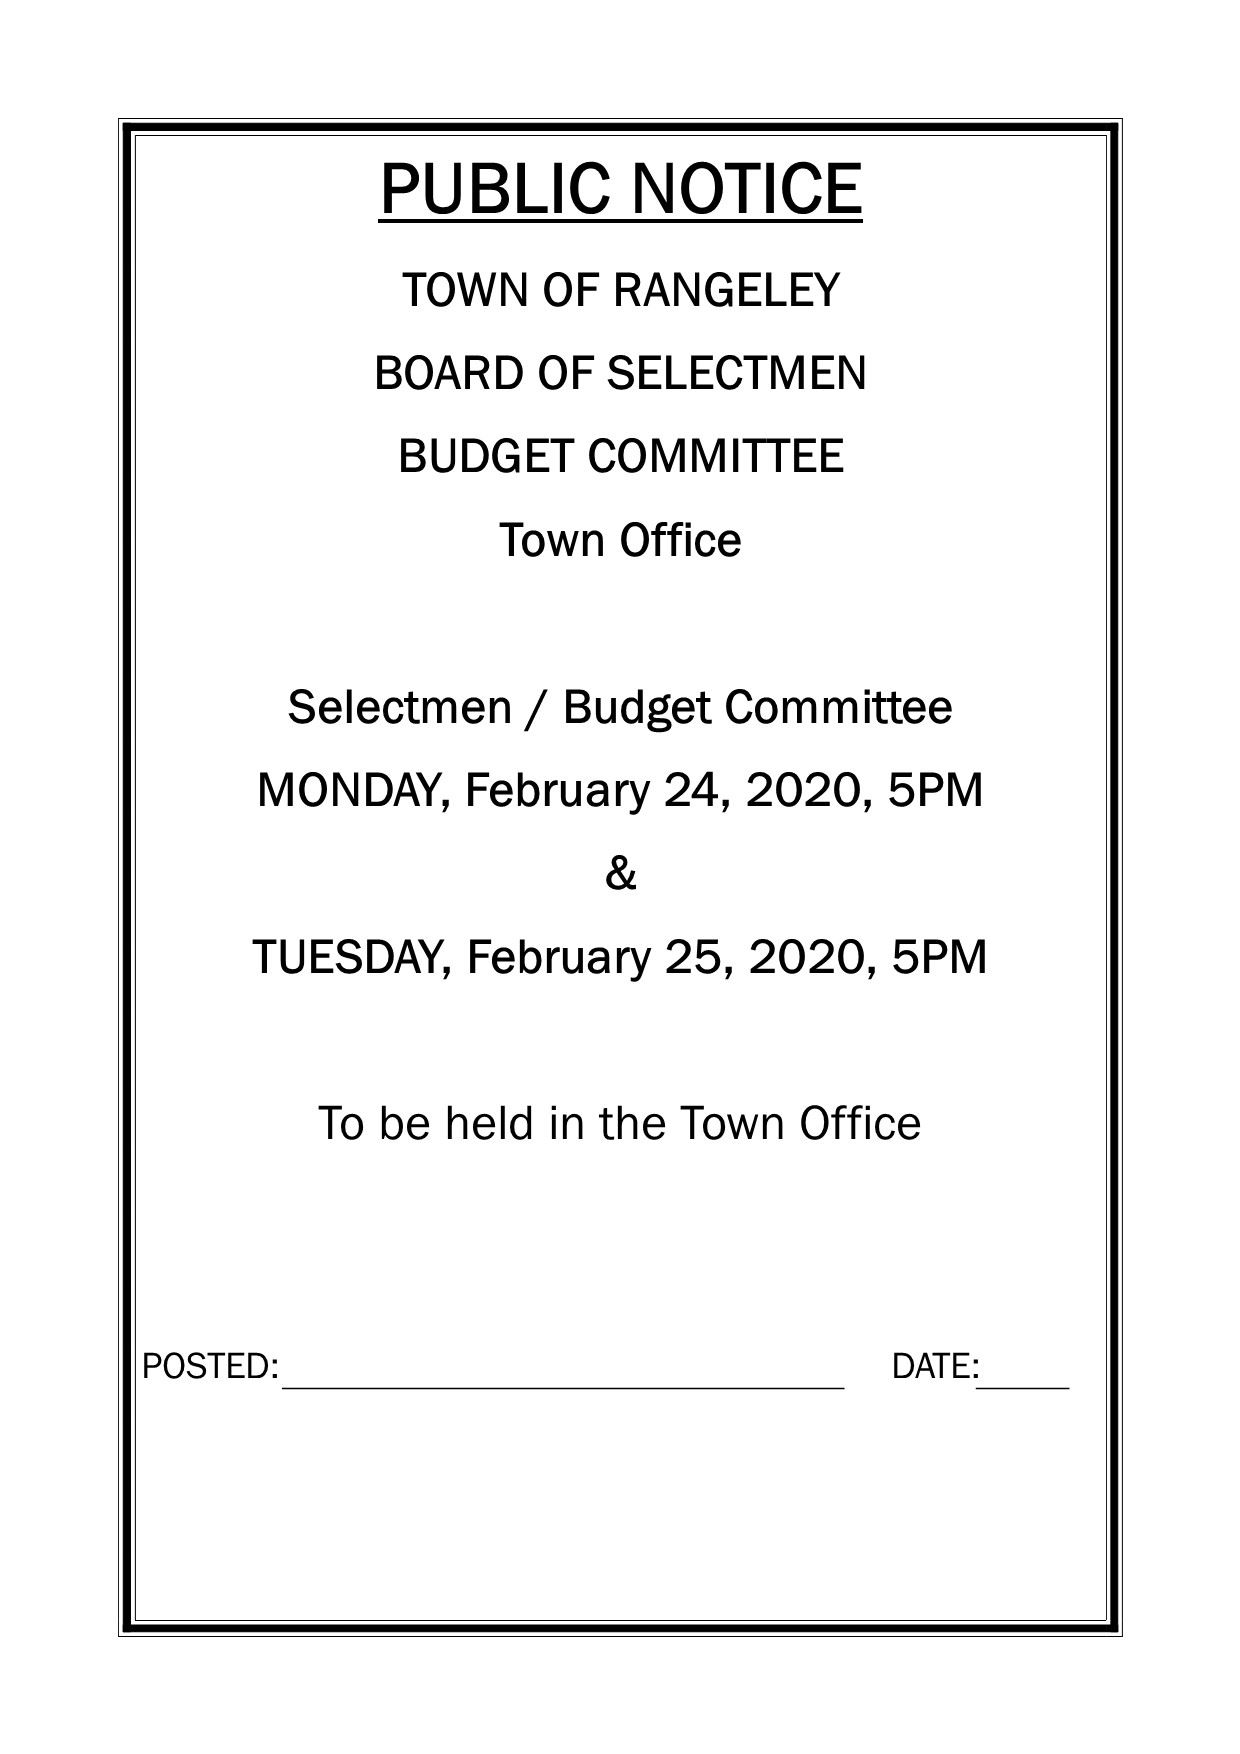 BOS . Budget Committee Meetings